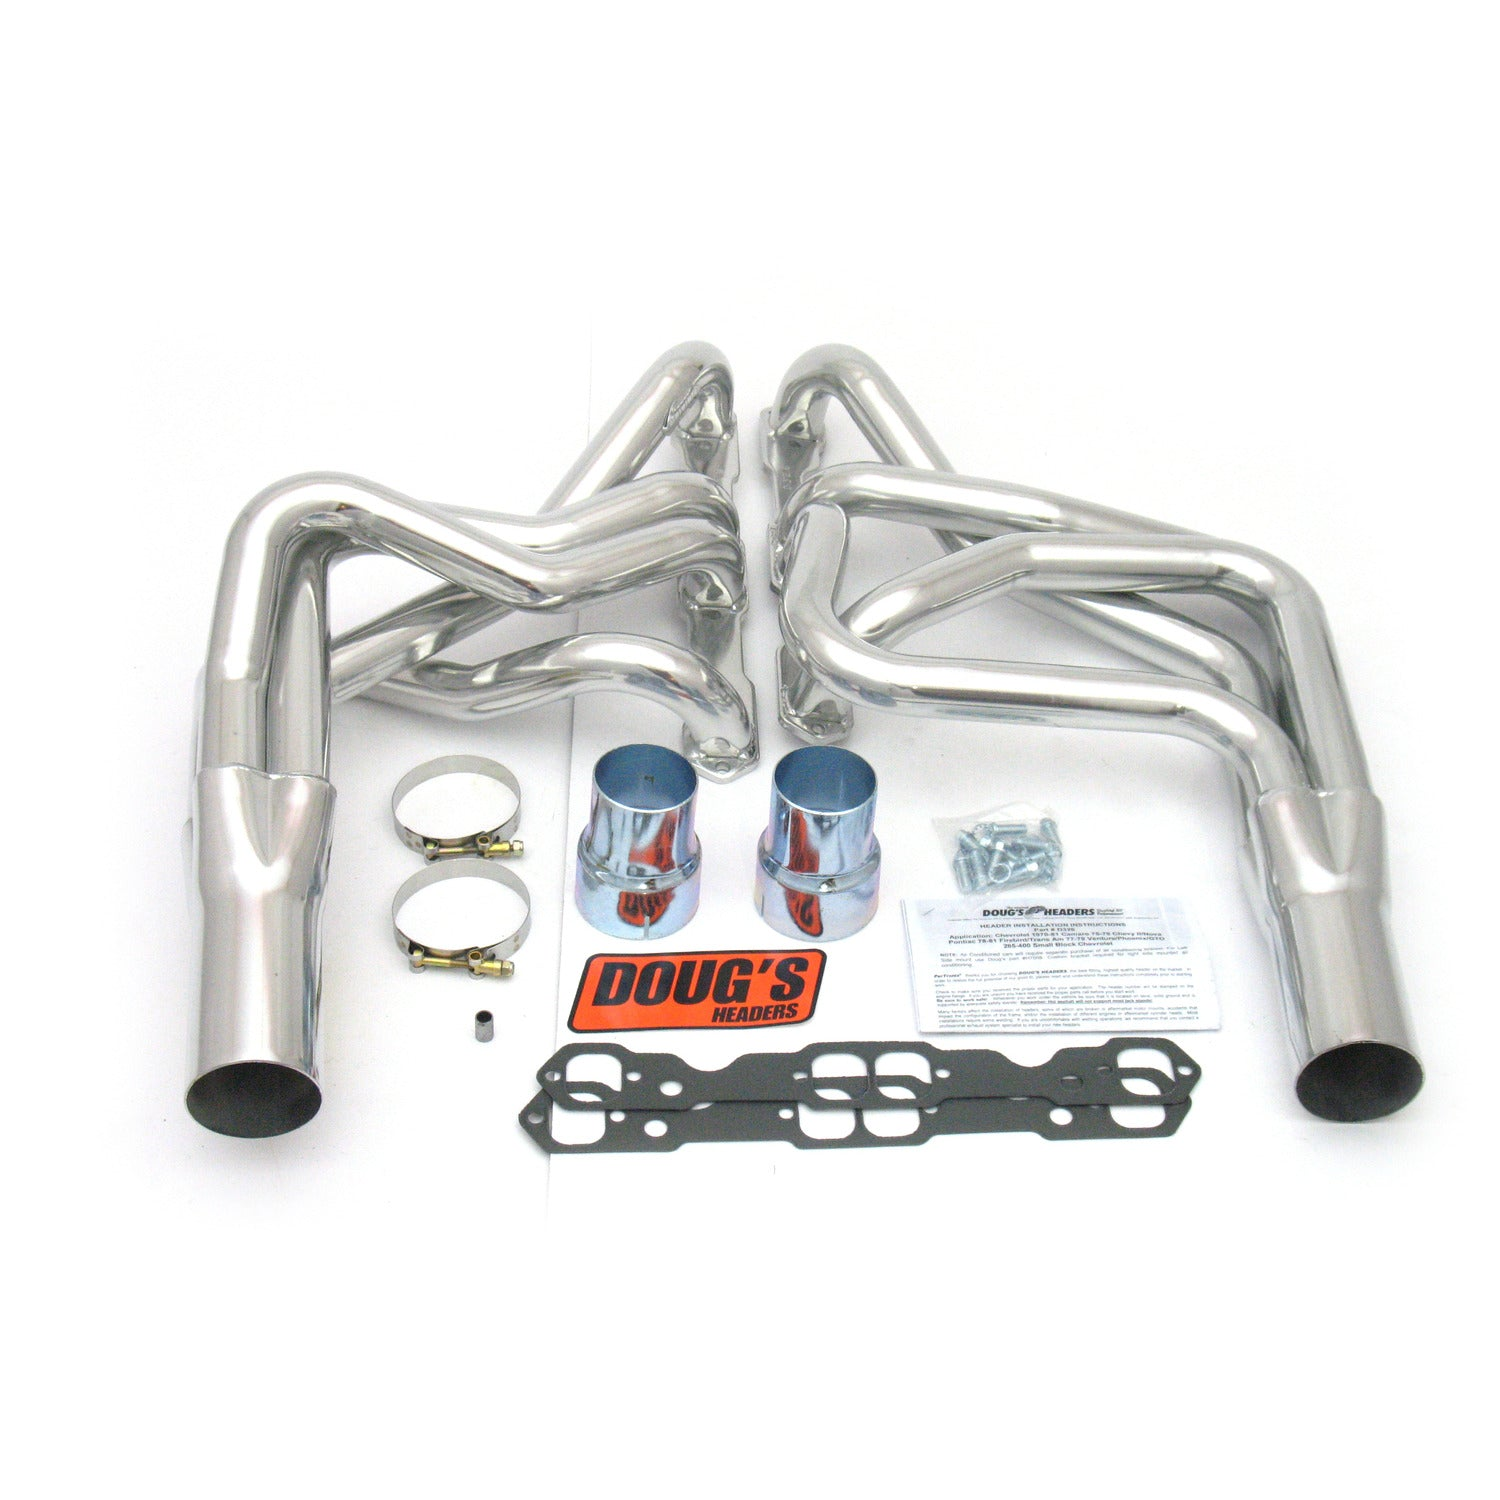 "Doug's Headers D326 1 7/8"" 4-Tube Full Length Header Camaro Small Block Chevrolet 70-81 Metallic Ceramic Coating"